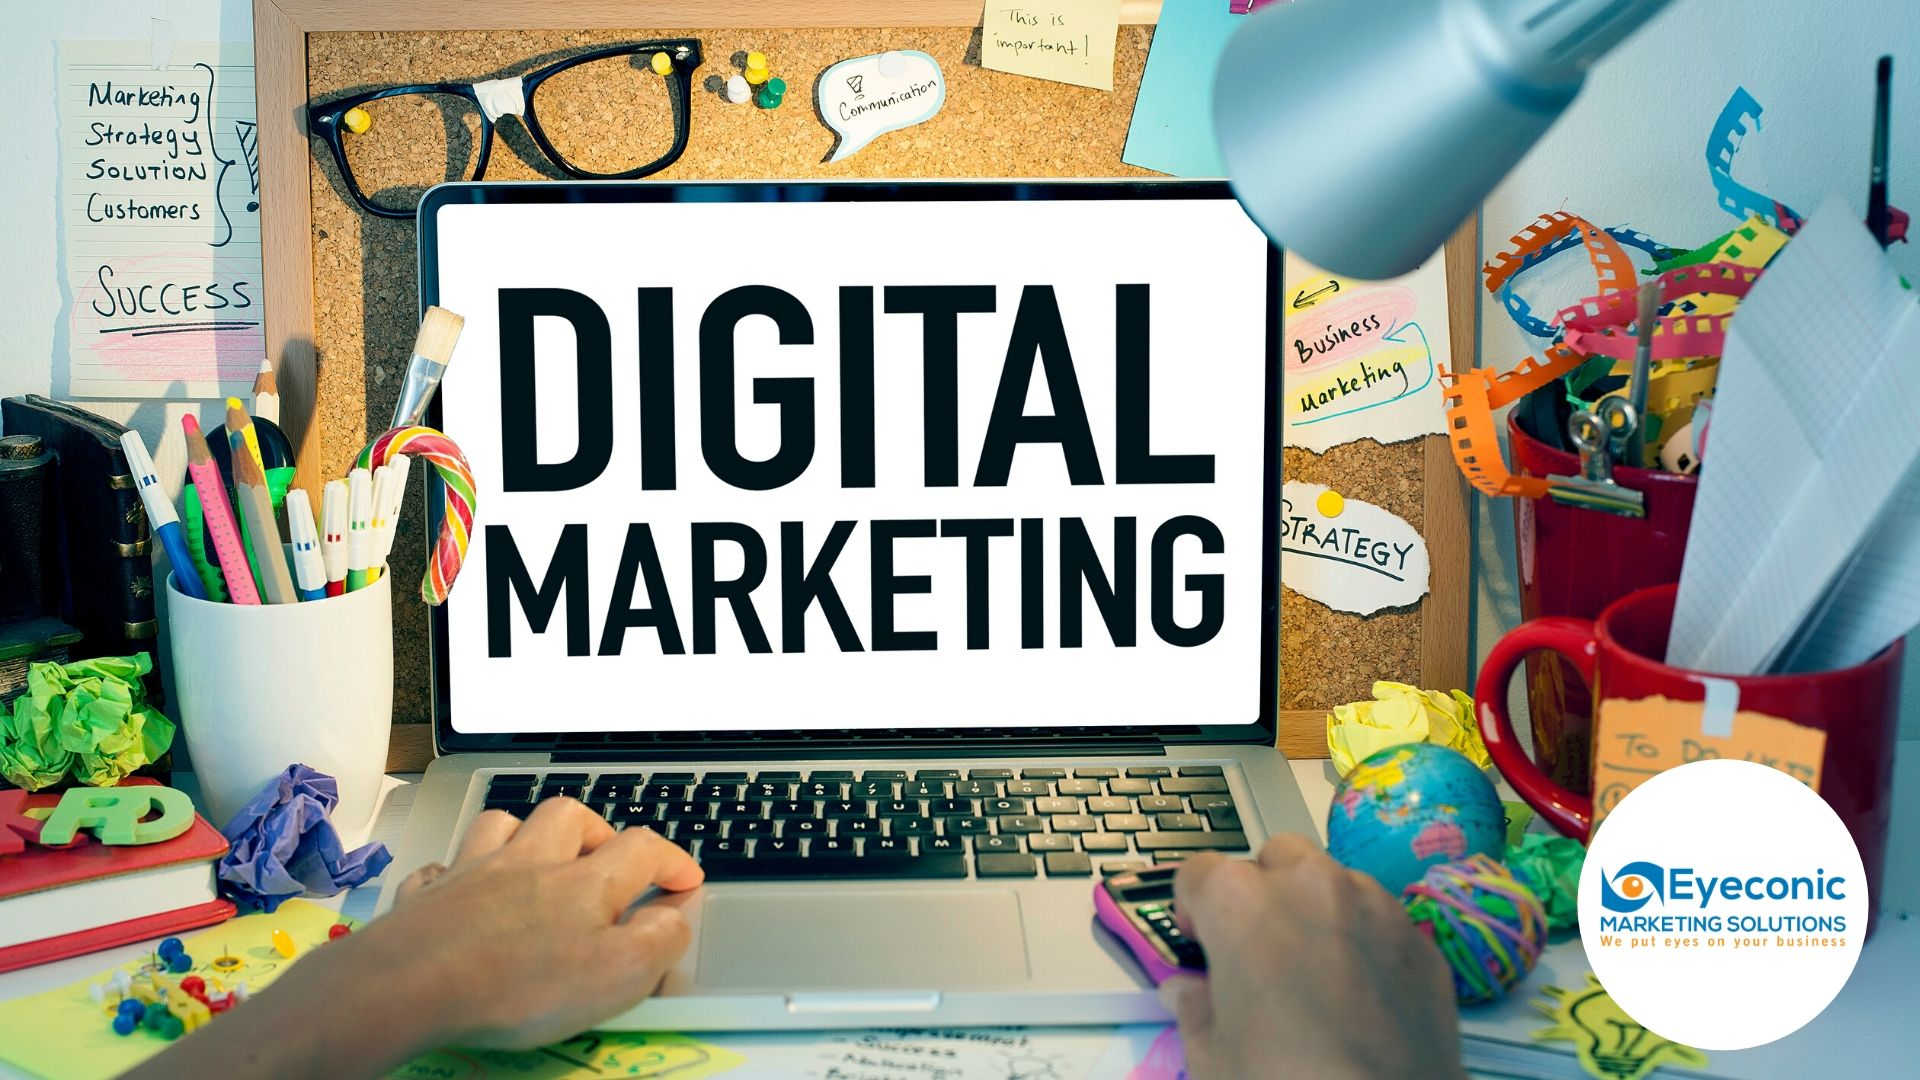 Top Digital Marketing Services in Baton Rouge, LA